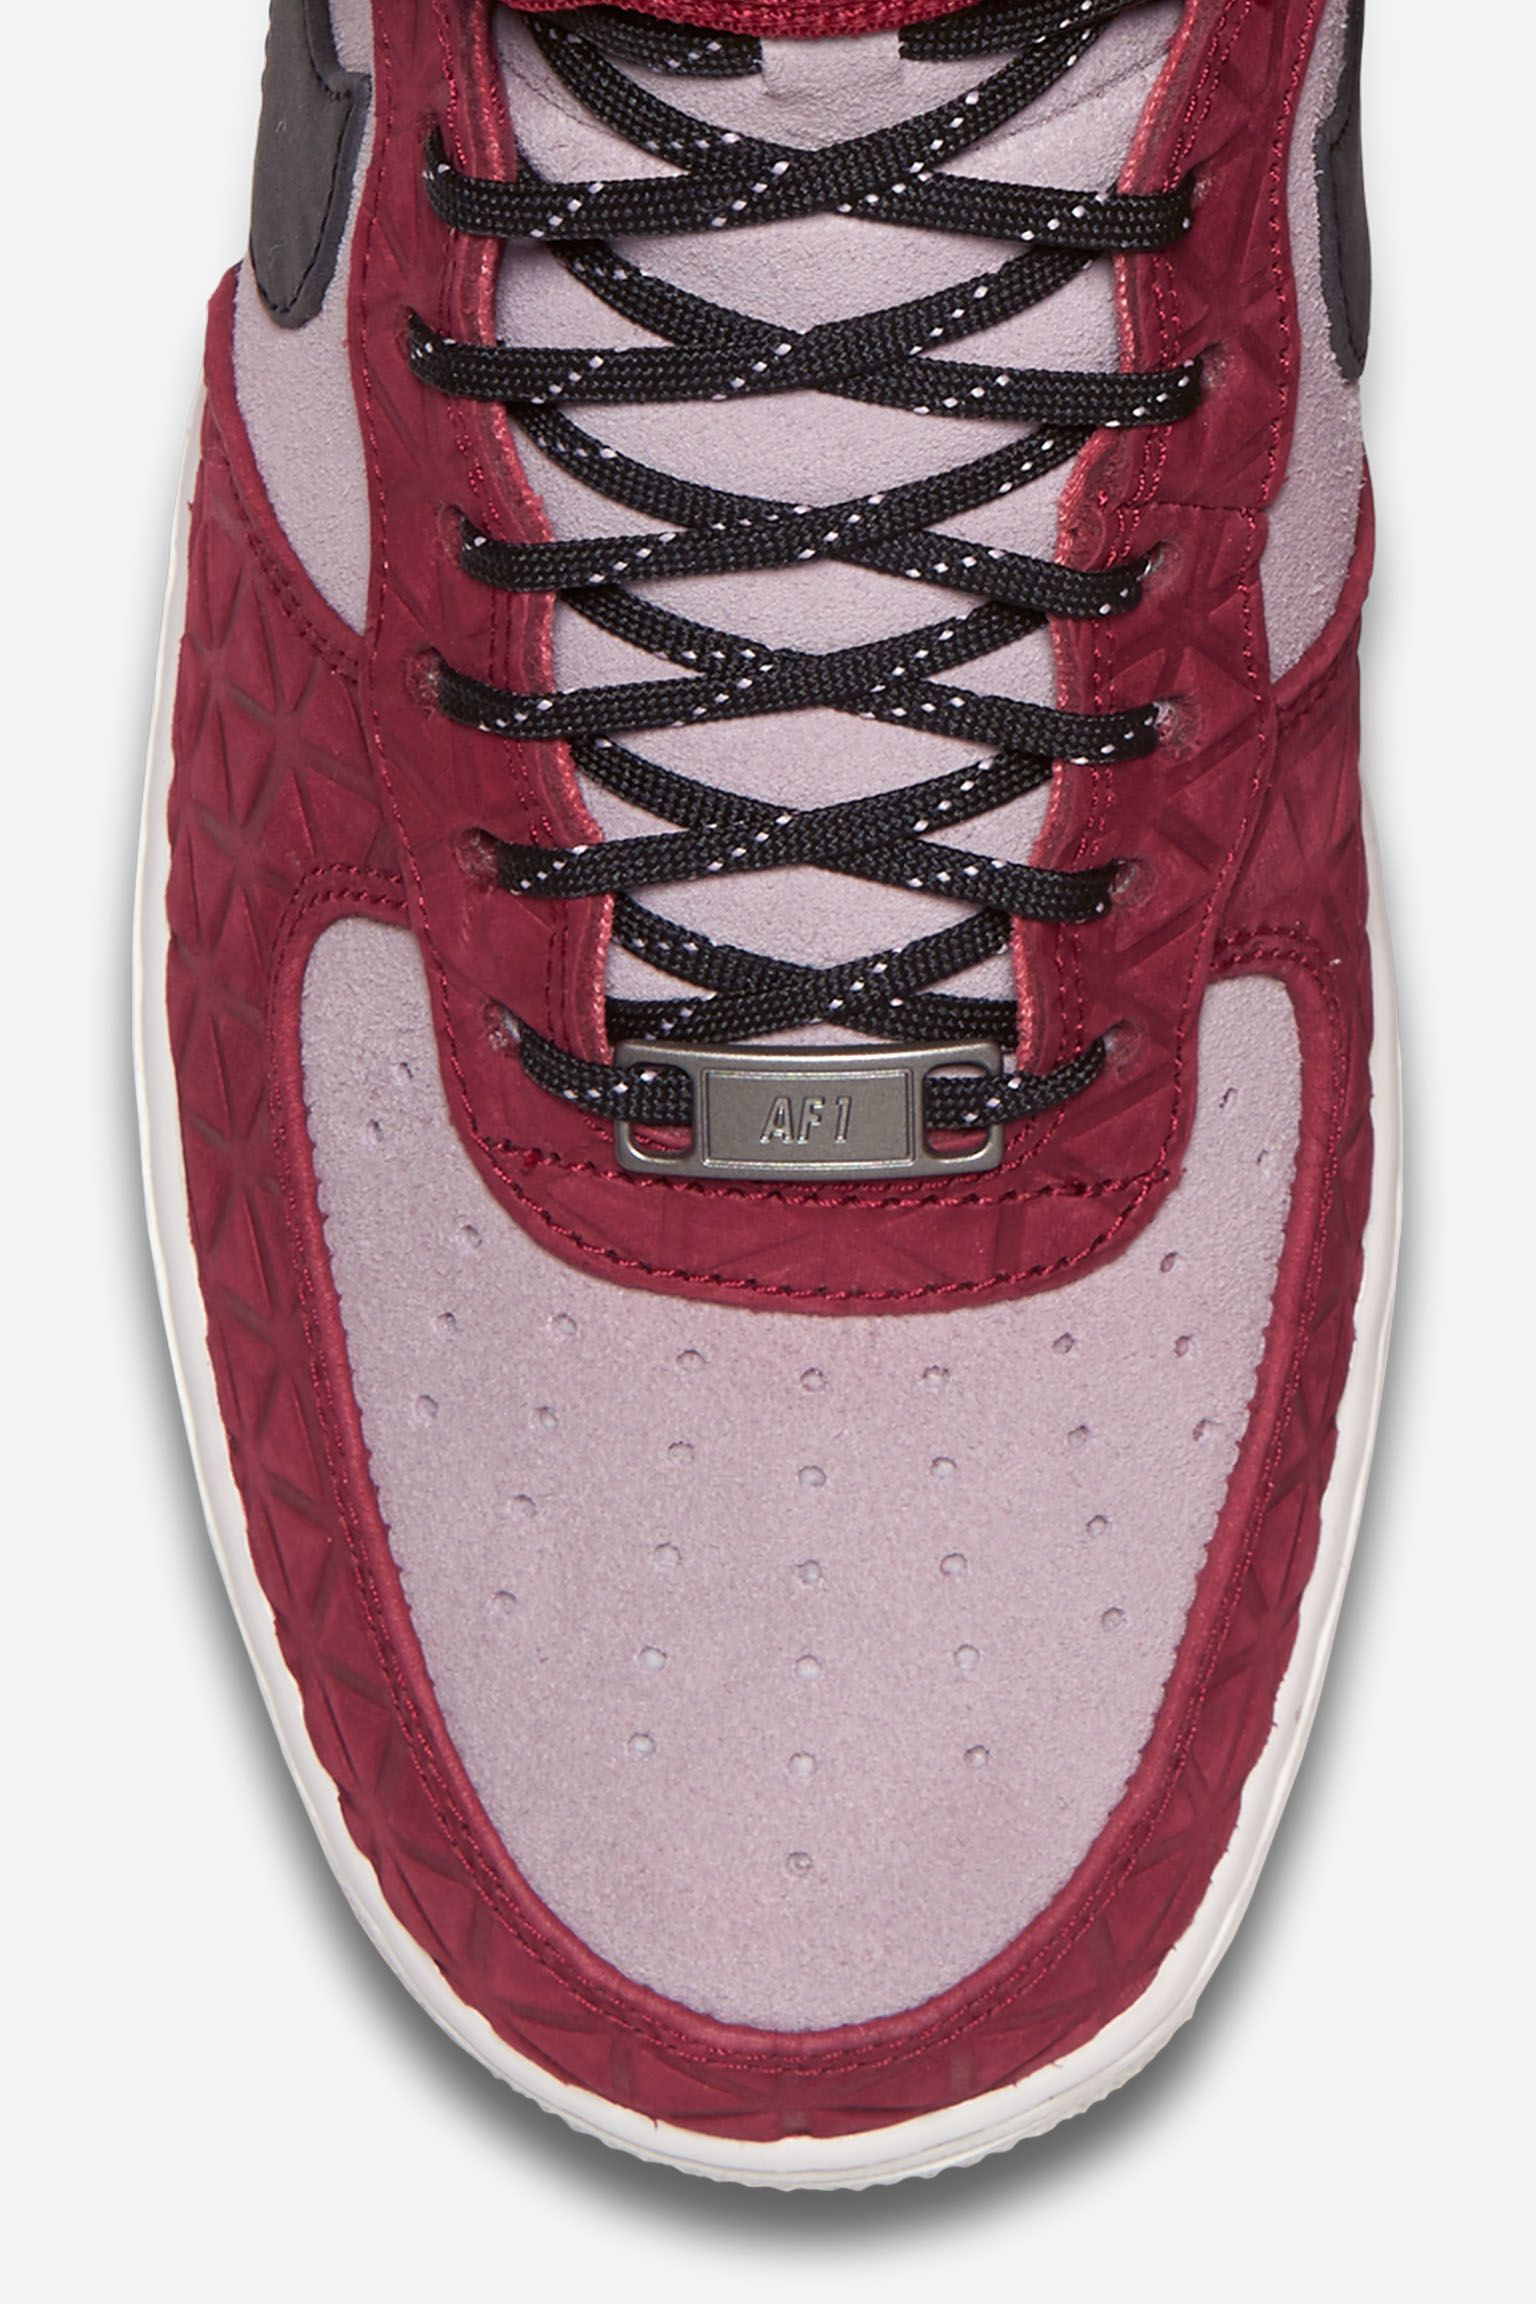 Women's Nike Air Force 1 Hi Premium 'Noble Red & Plum Fog'